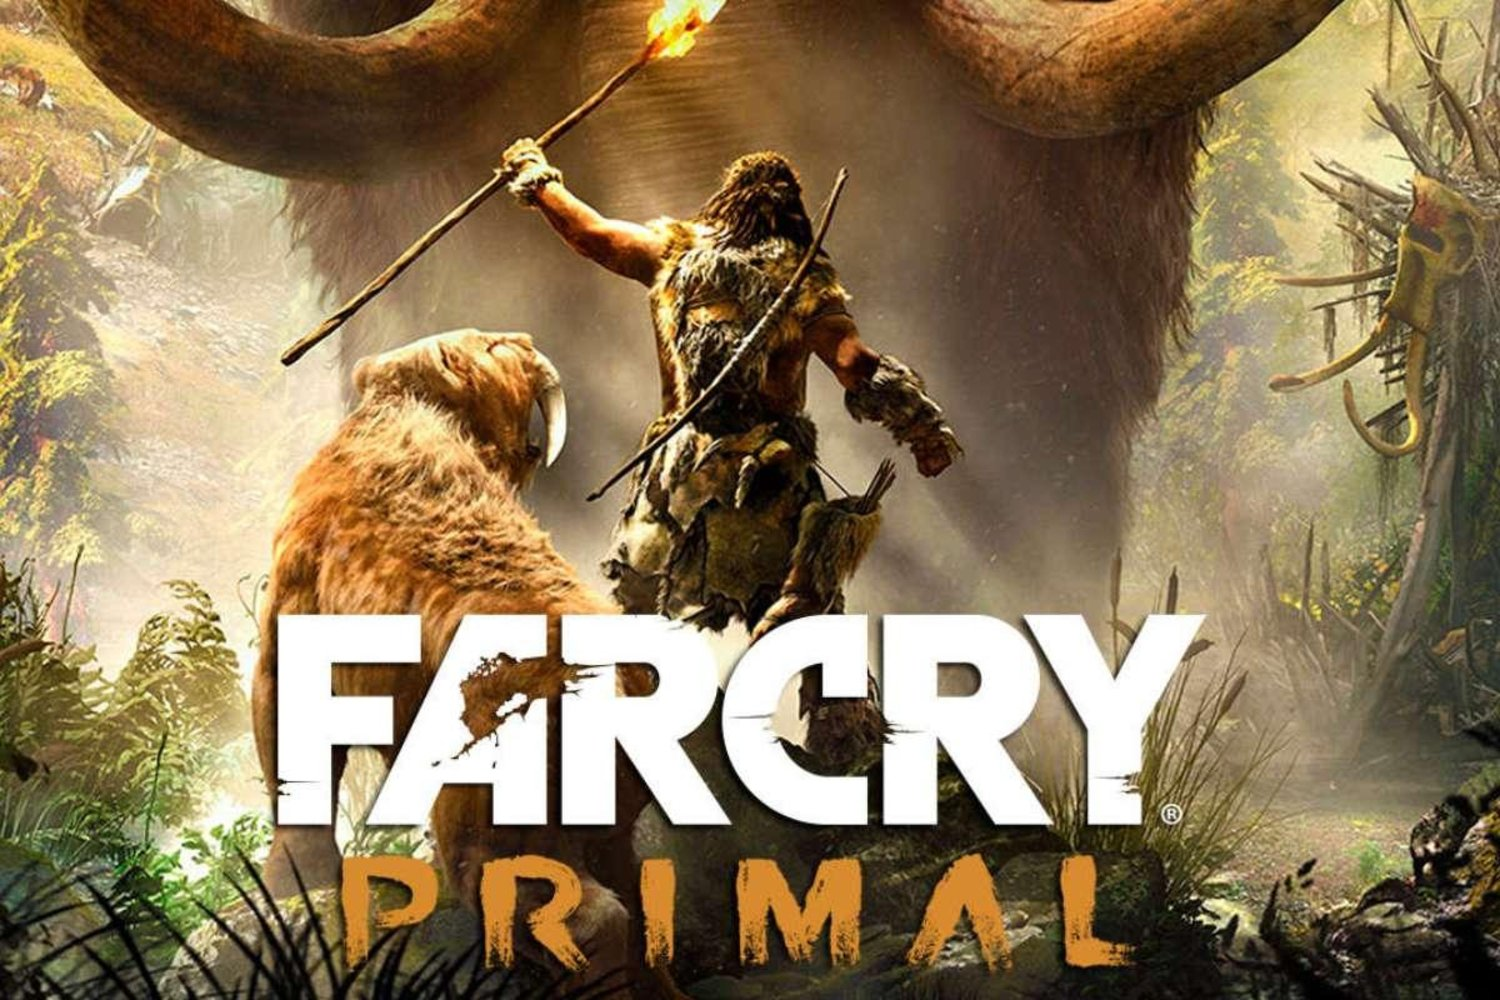 App Wizard Far Cry Primal Cpy Crack Working Tested On Windows 10